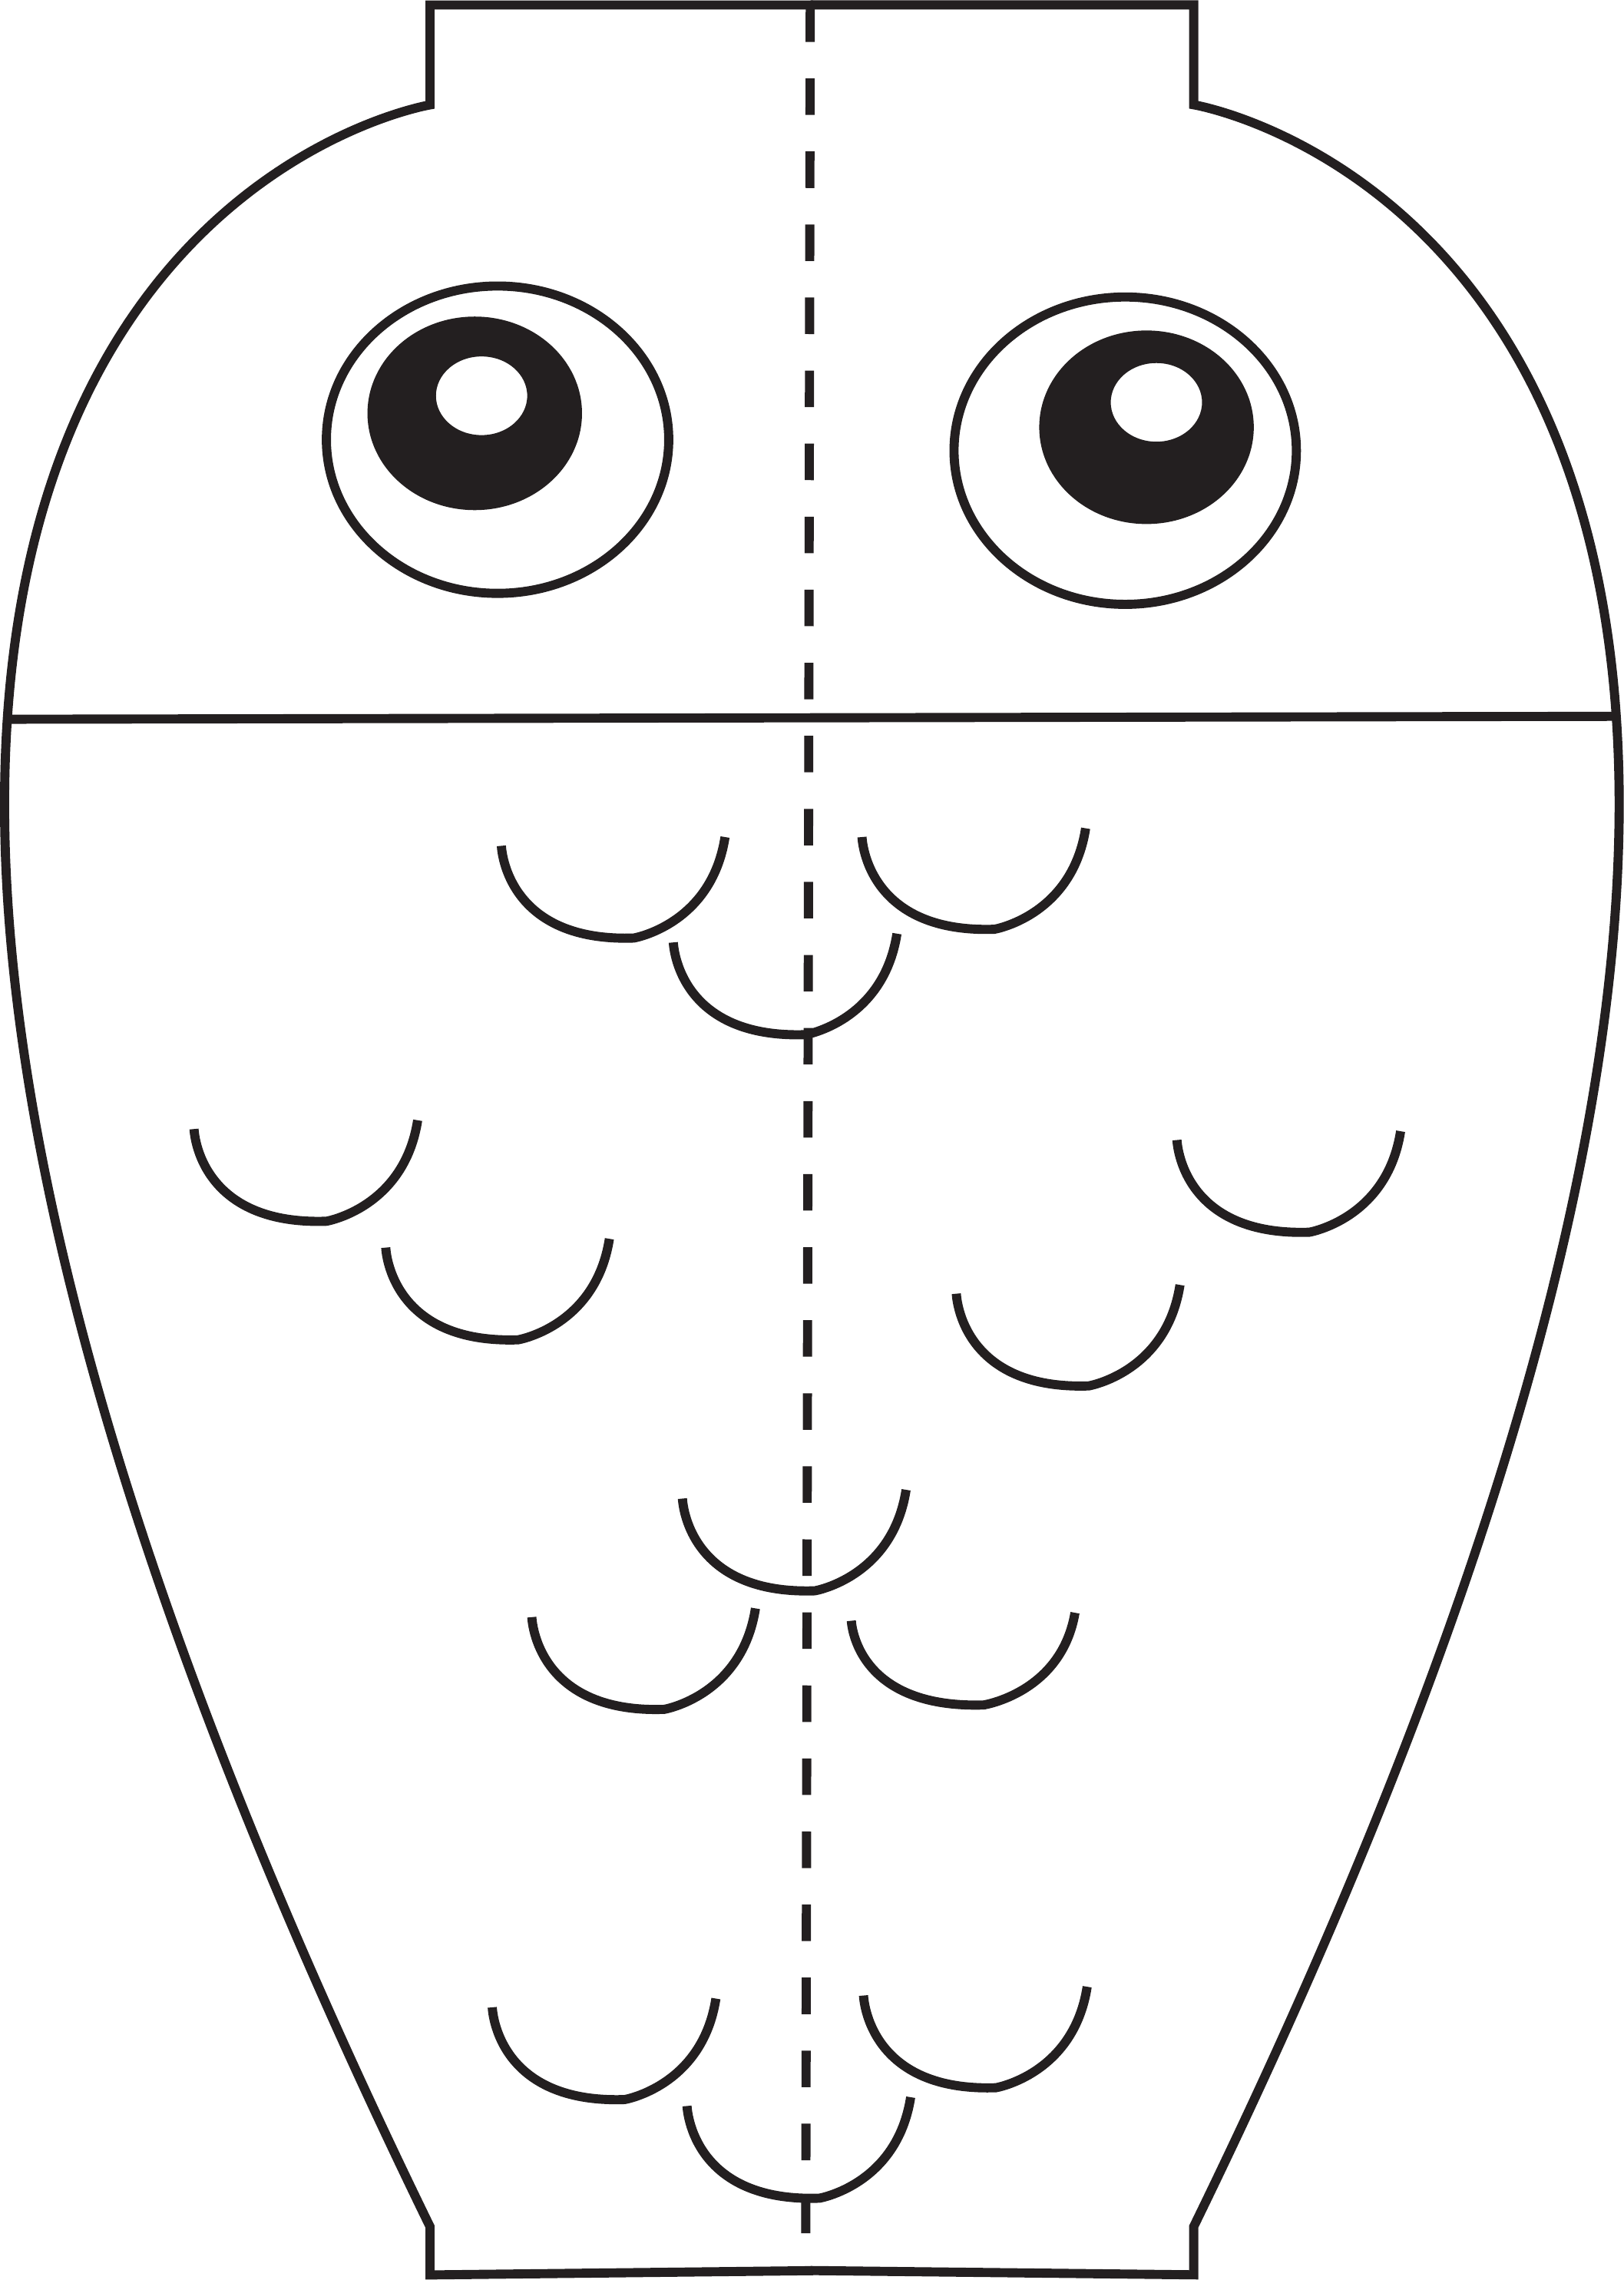 It's just a picture of Kite Template Printable regarding background